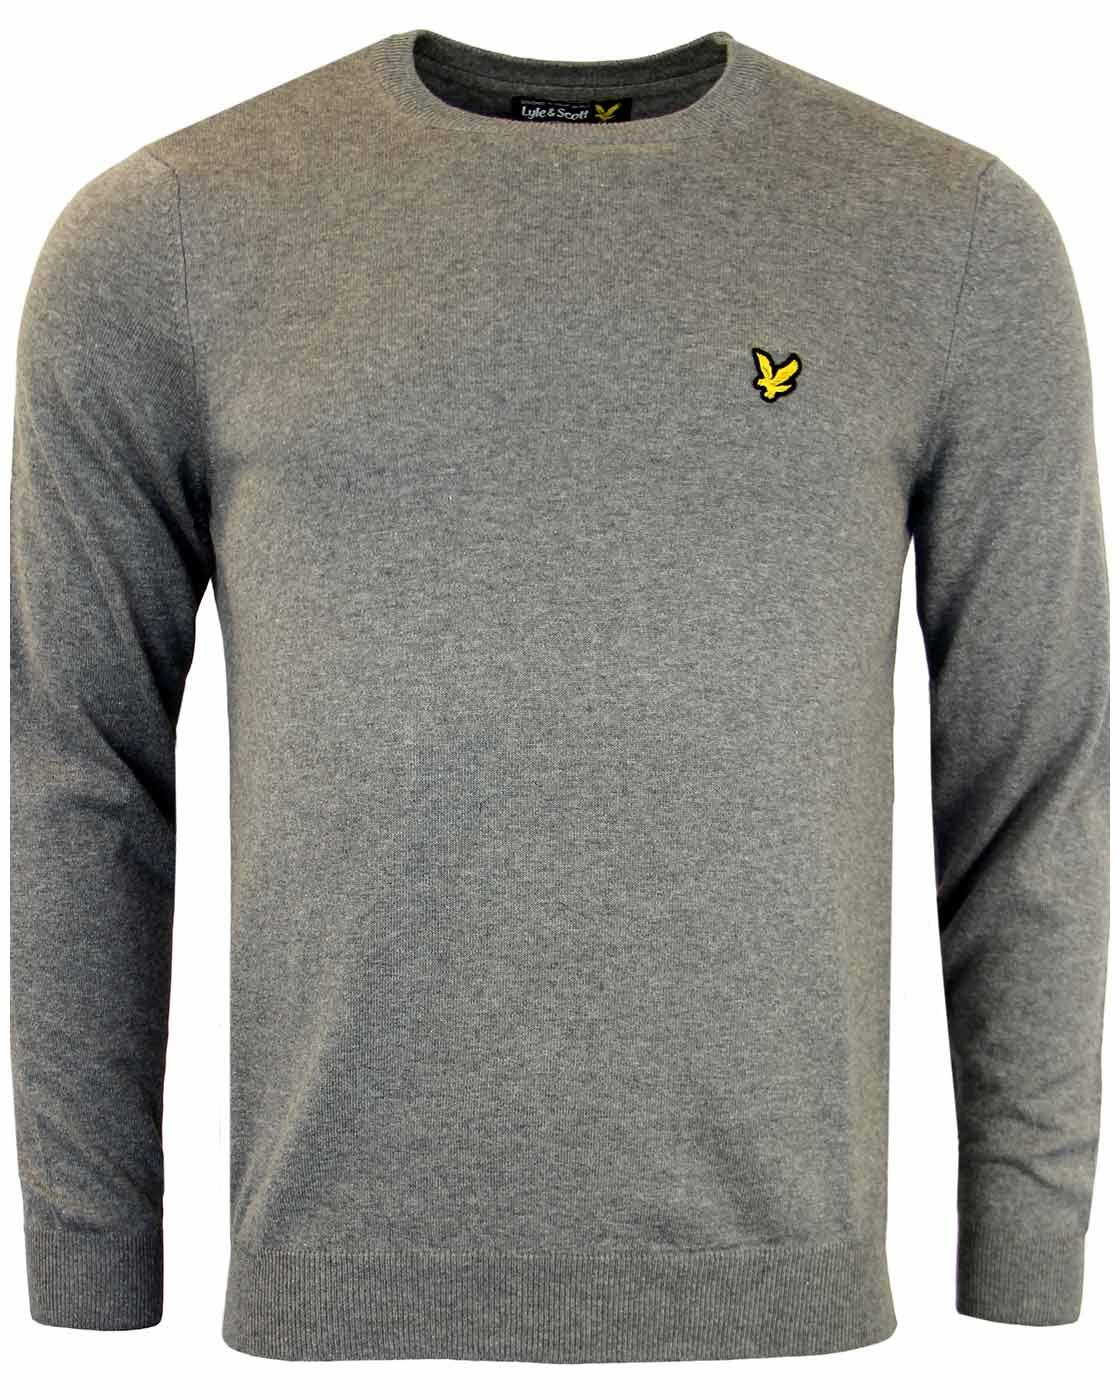 LYLE & SCOTT Retro Cotton Crew Neck Jumper Grey